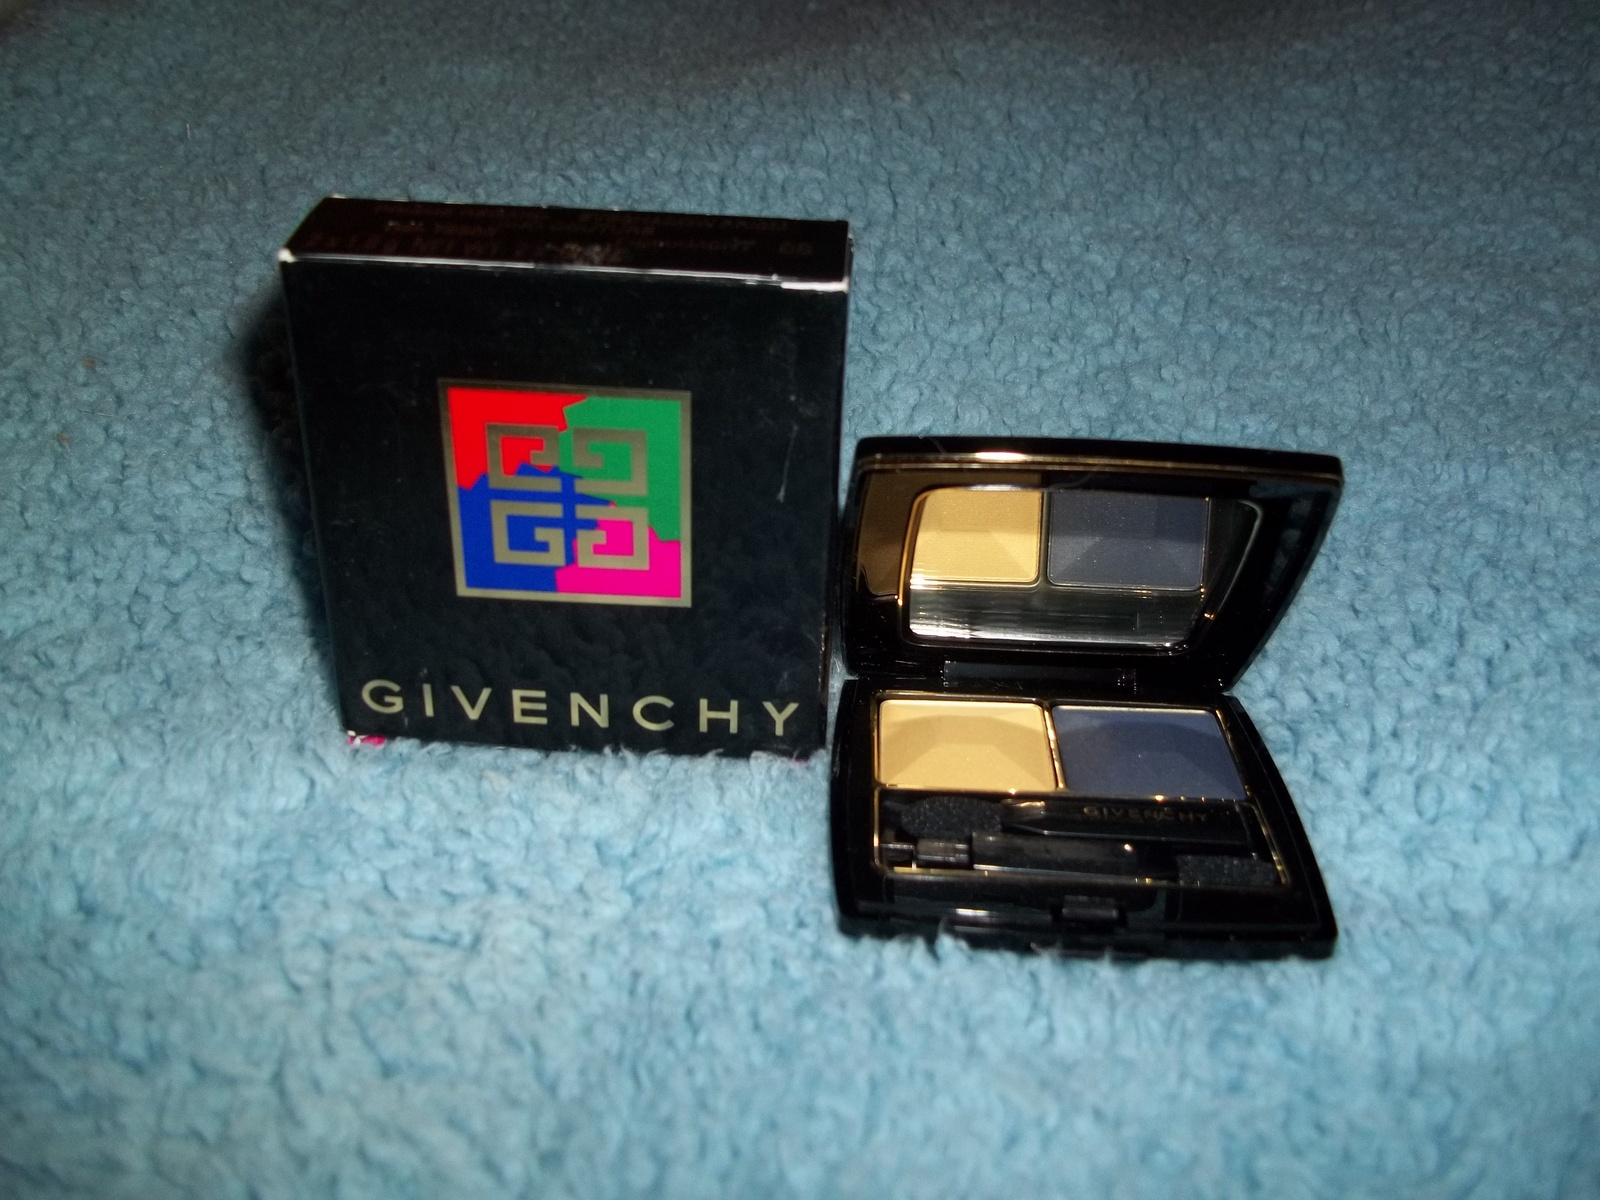 Primary image for Givenchy Eyeshadow Prism Duo Couture Color:  Firmament 68. 1.8g